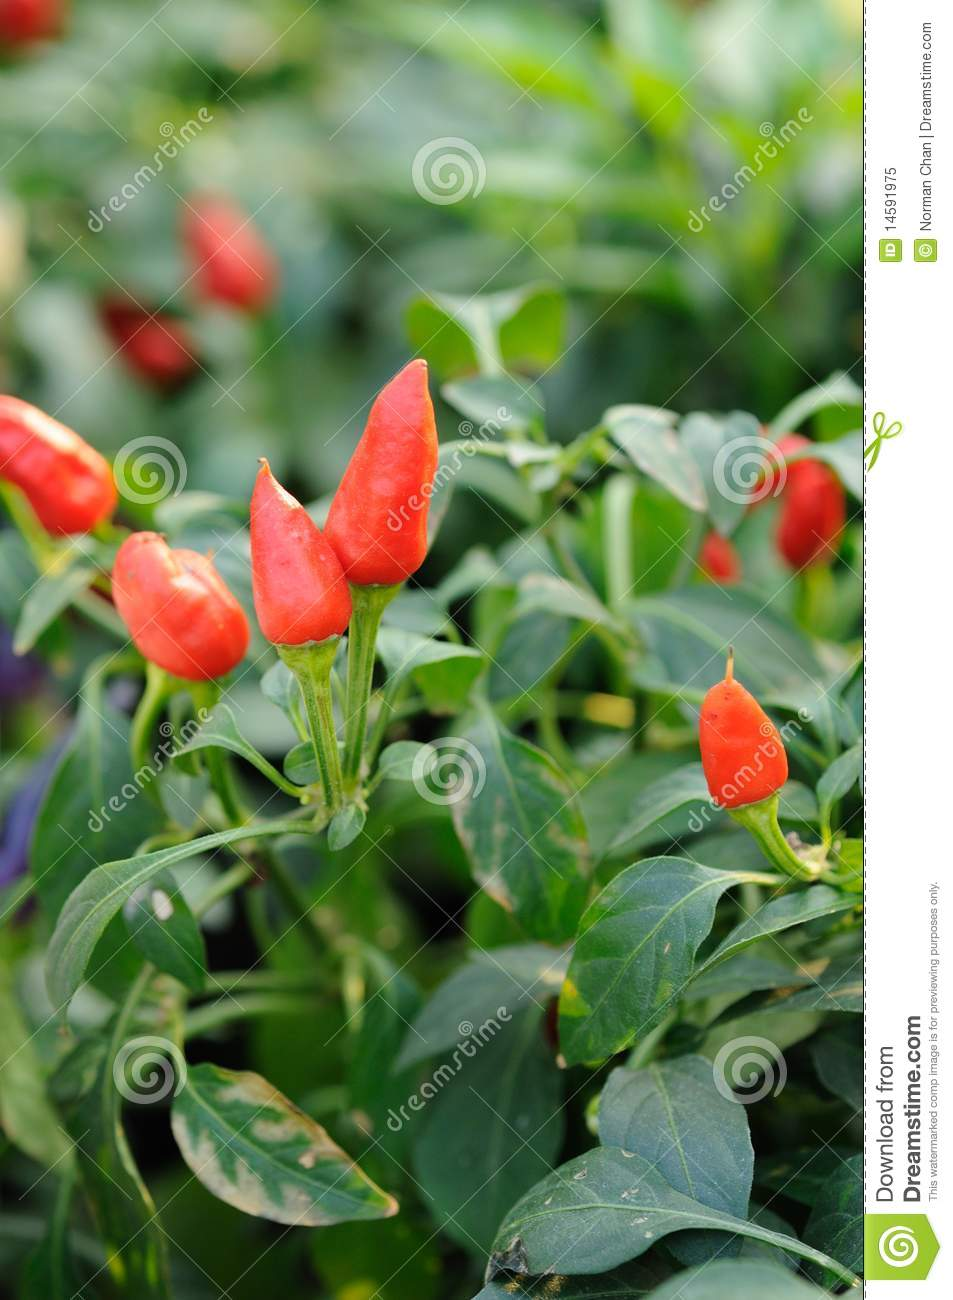 Chili Pepper Plant Royalty Free Stock Photo - Image: 14591975